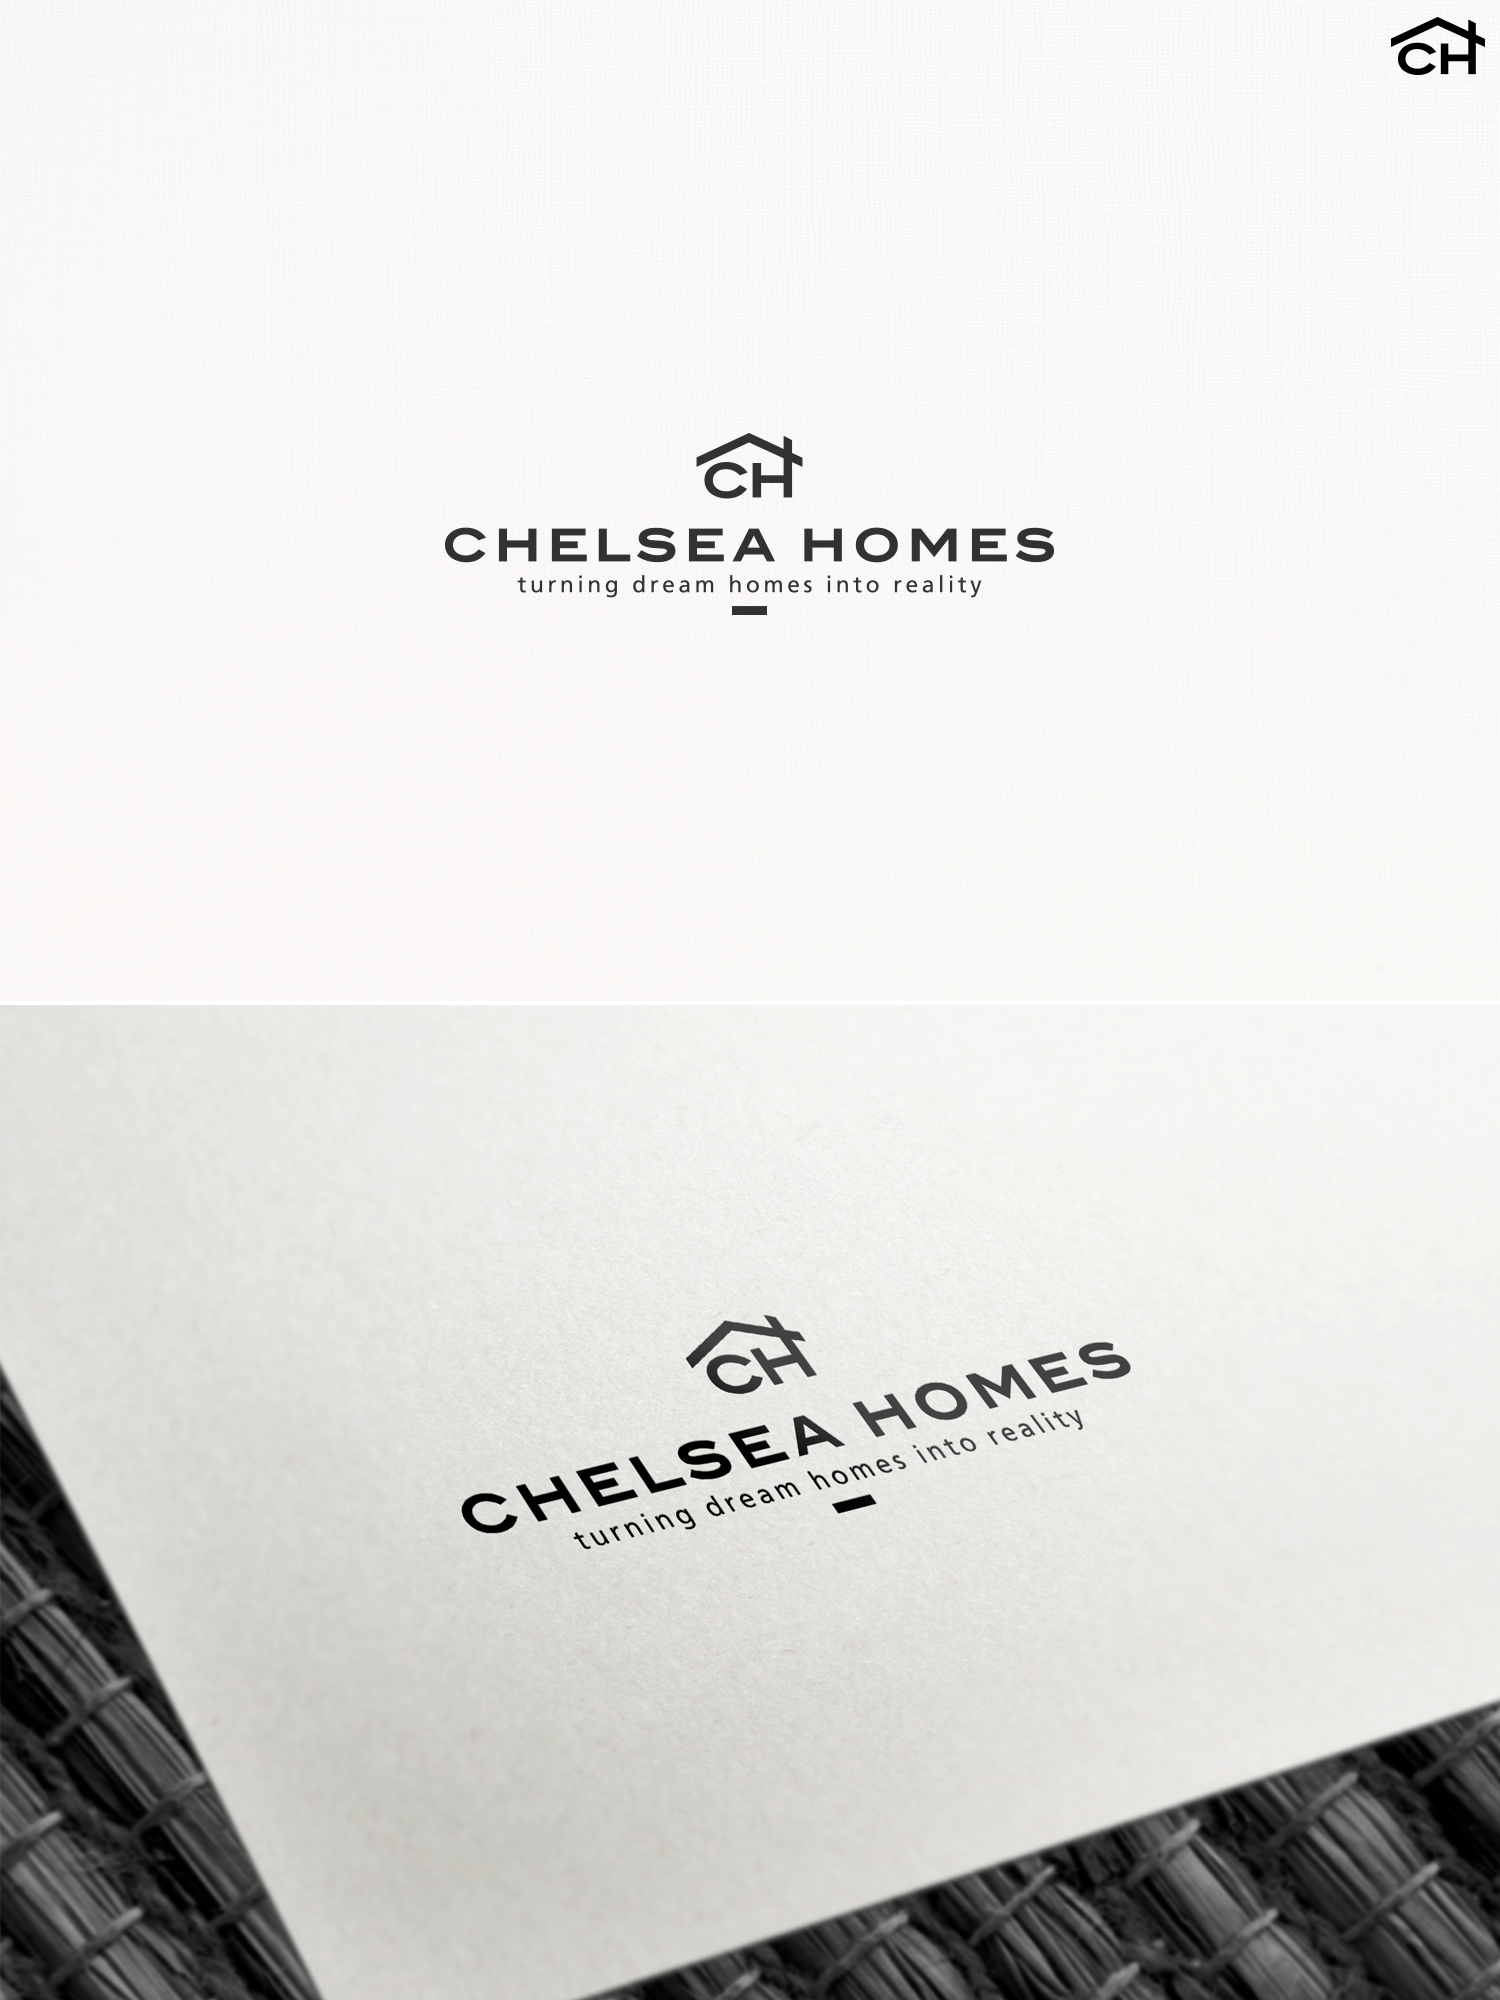 Generic logo designs sold | Letter H as a house logo designs sold ...